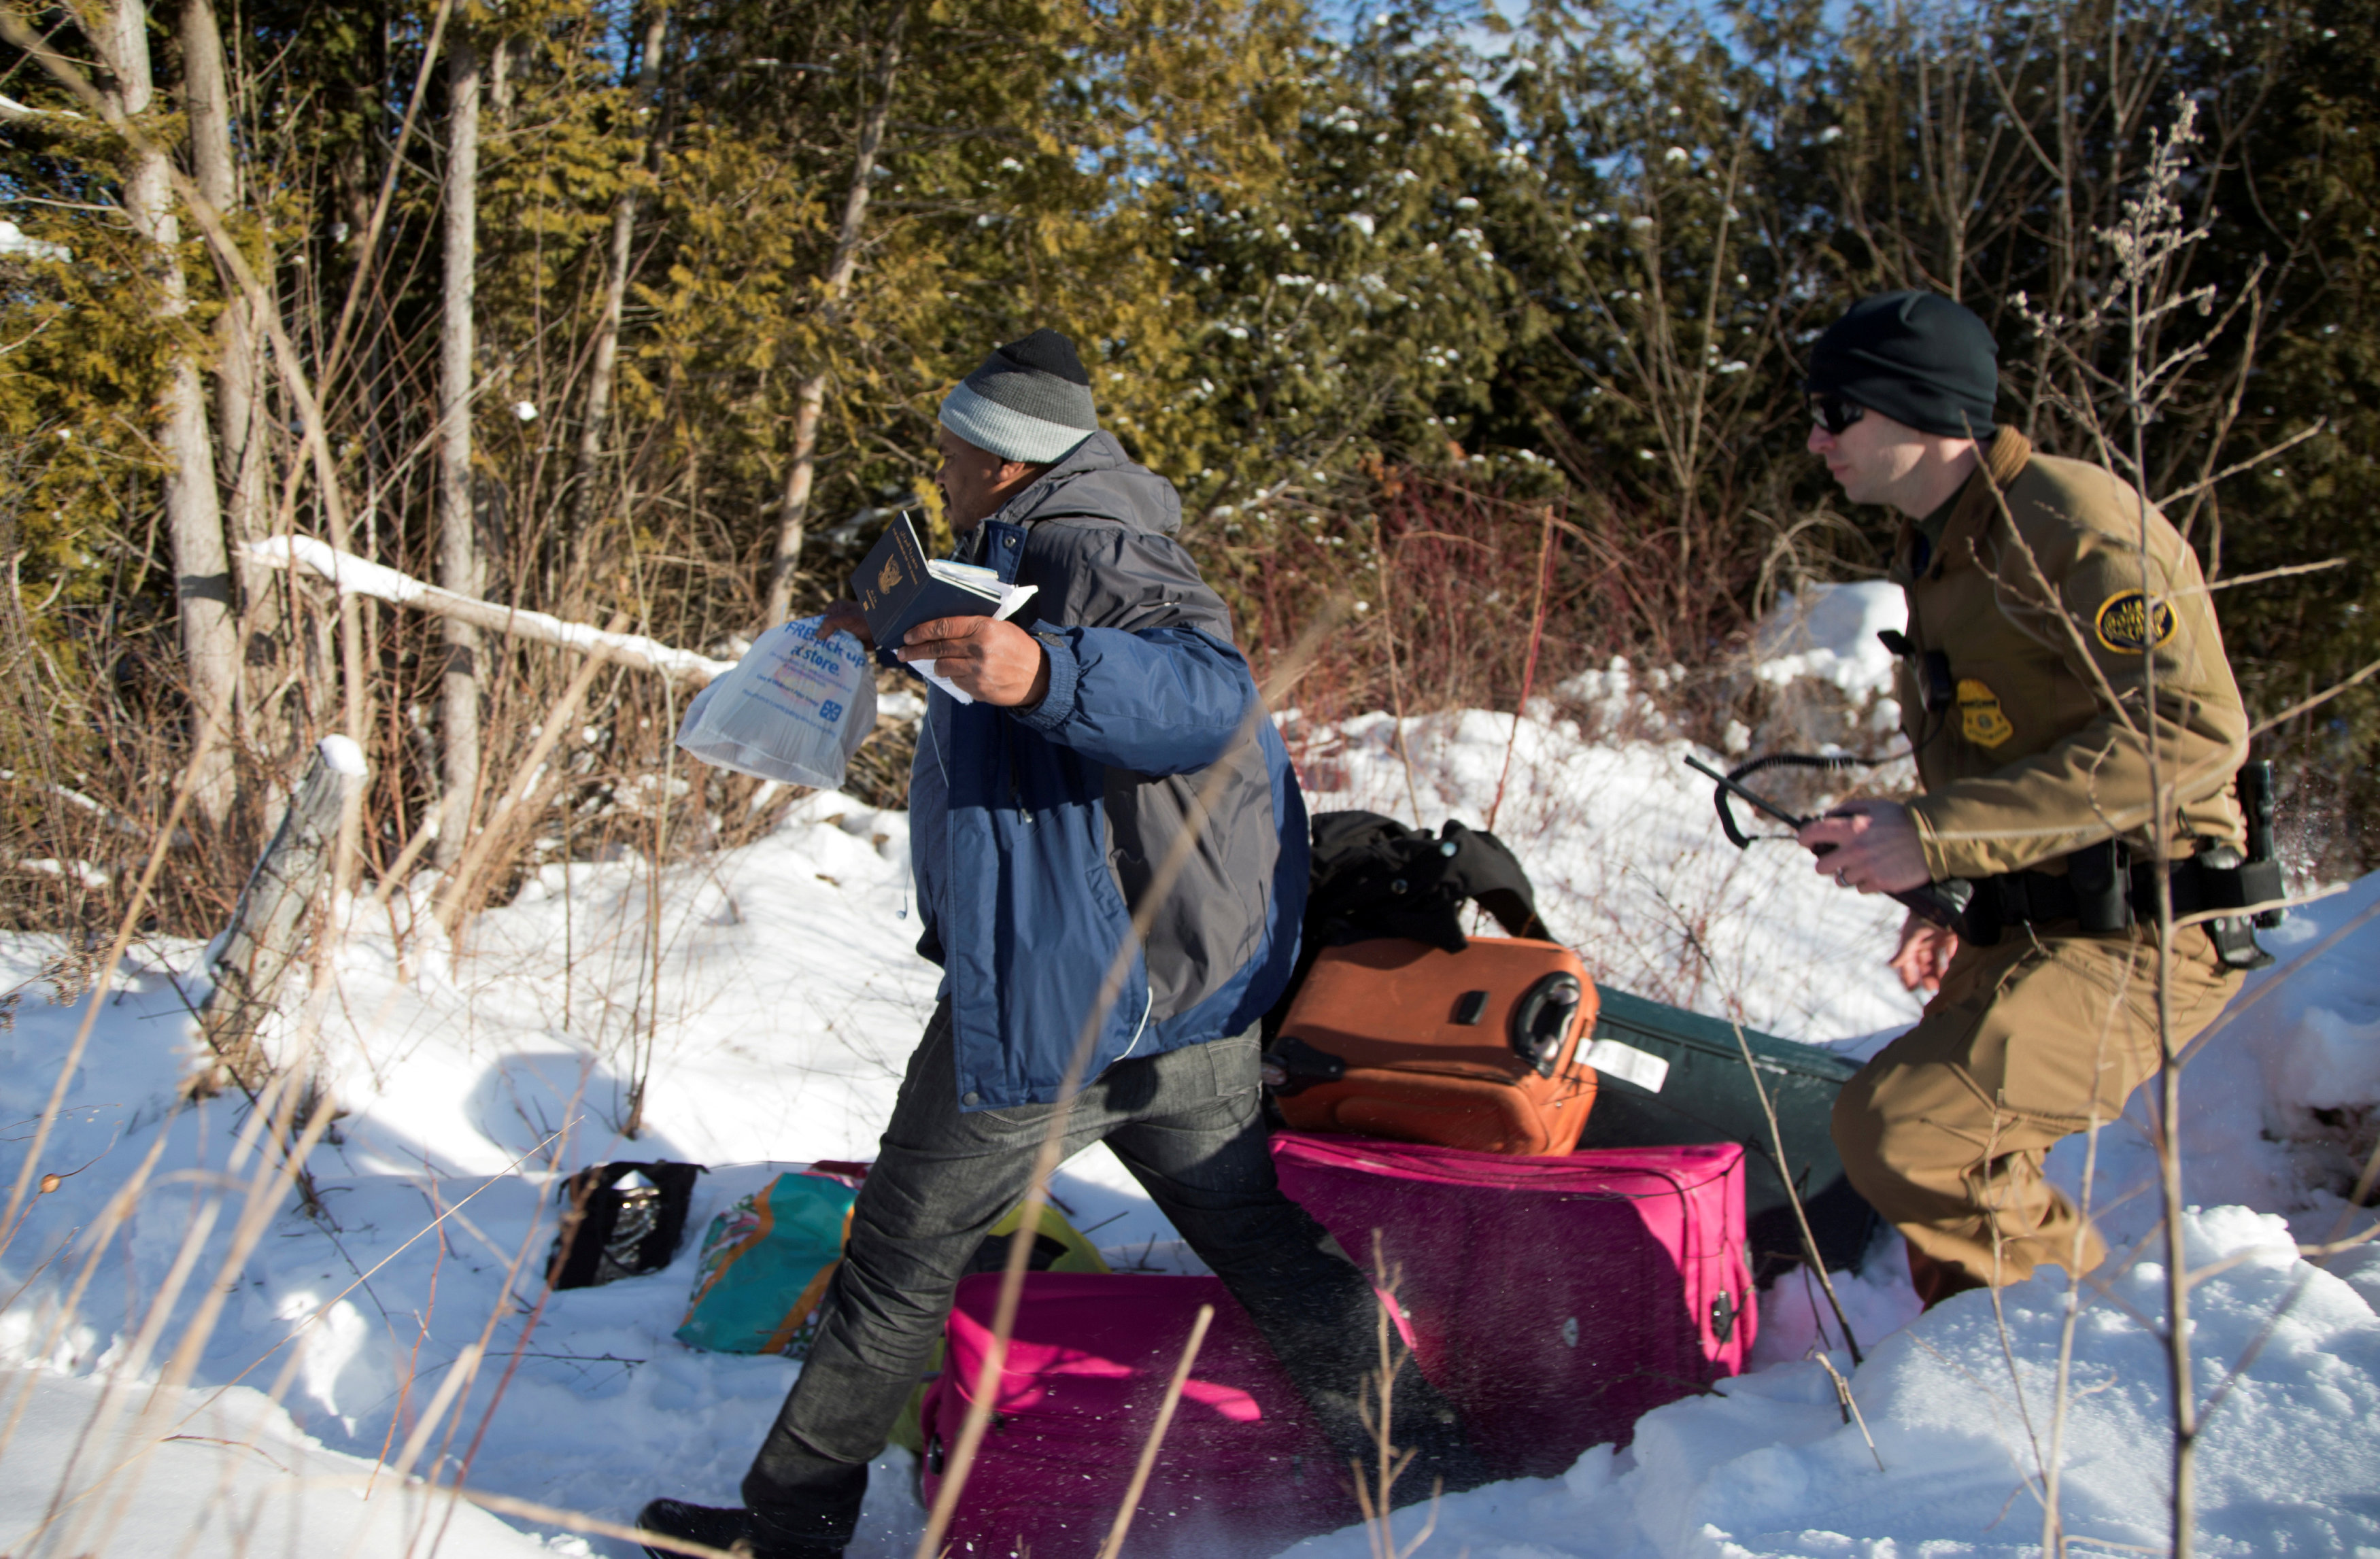 A man who claimed to be from Sudan runs for the border holding his family's passports as he is chased by a U.S. border patrol officer as he was detained after his family crossed the U.S.-Canada border into Hemmingford, Canada, from Champlain in New York, U.S. on Feb. 17, 2017.  (REUTERS/Christinne Muschi)